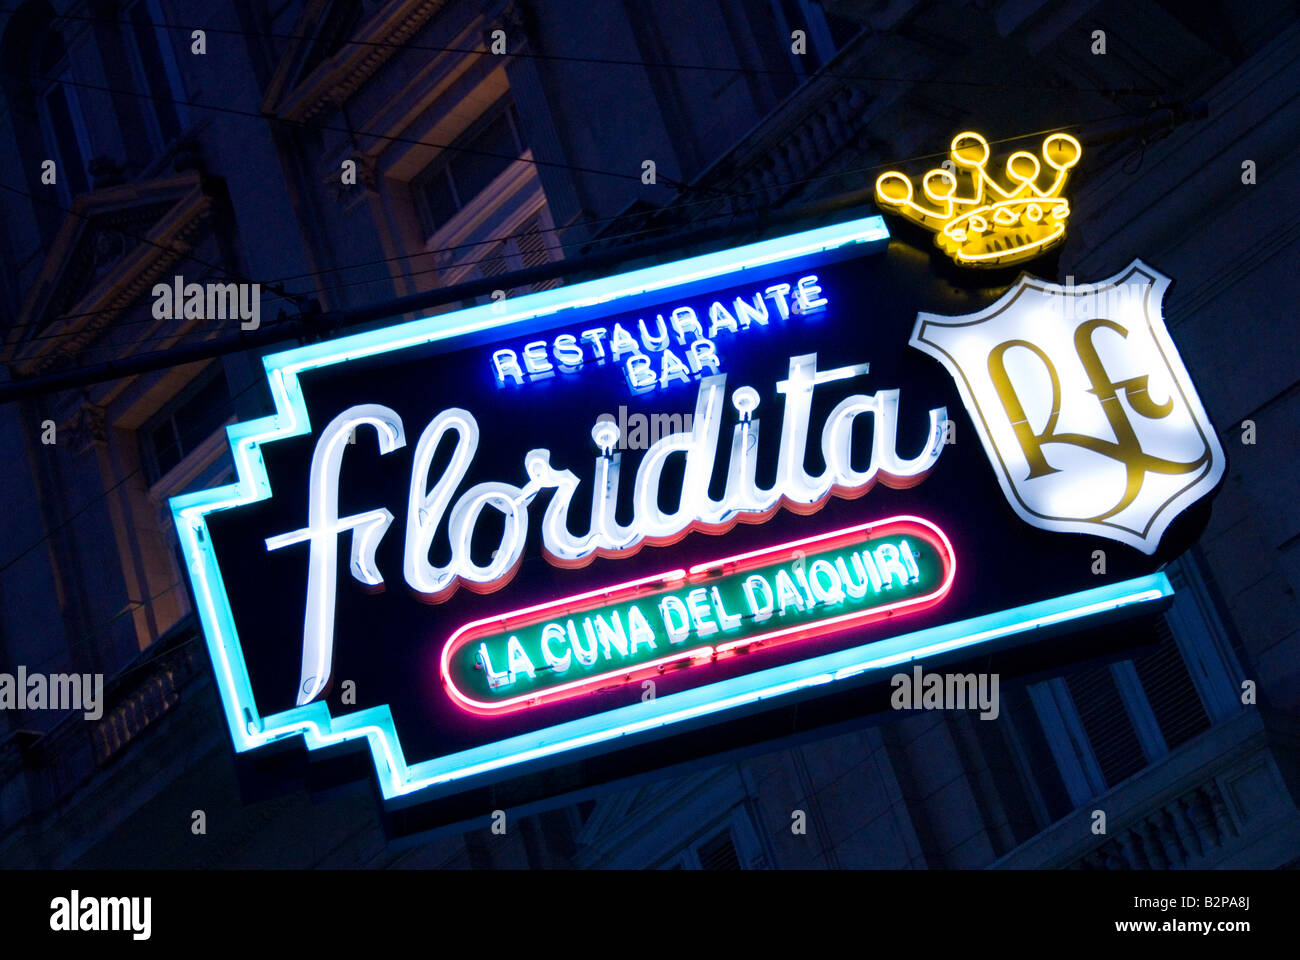 Neon sign for El Floridita bar La Habana Vieja Cuba - Stock Image